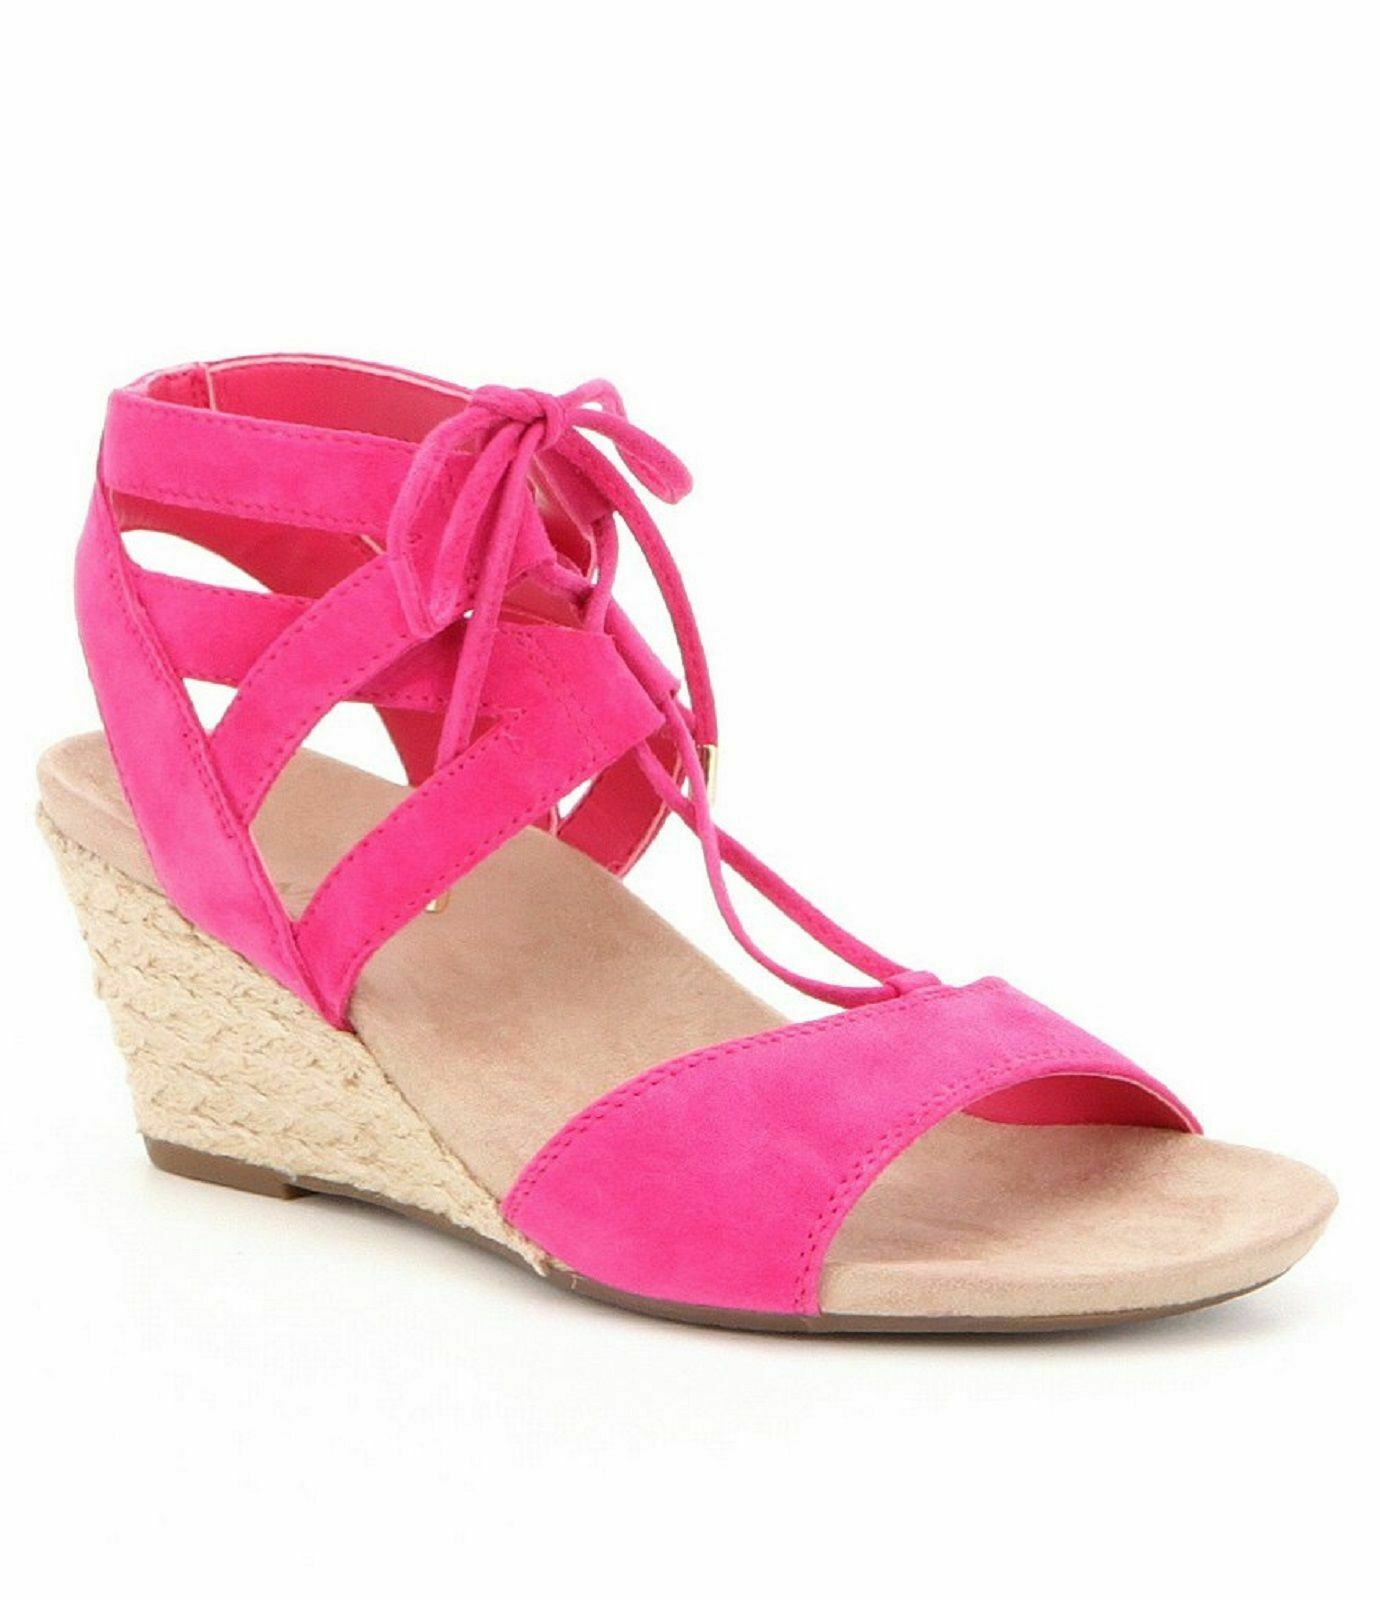 VIONIC Ladies NOBLE TANSY Suede Lace-Up Espadrille Sandals PINK Sz. 8M  NIB